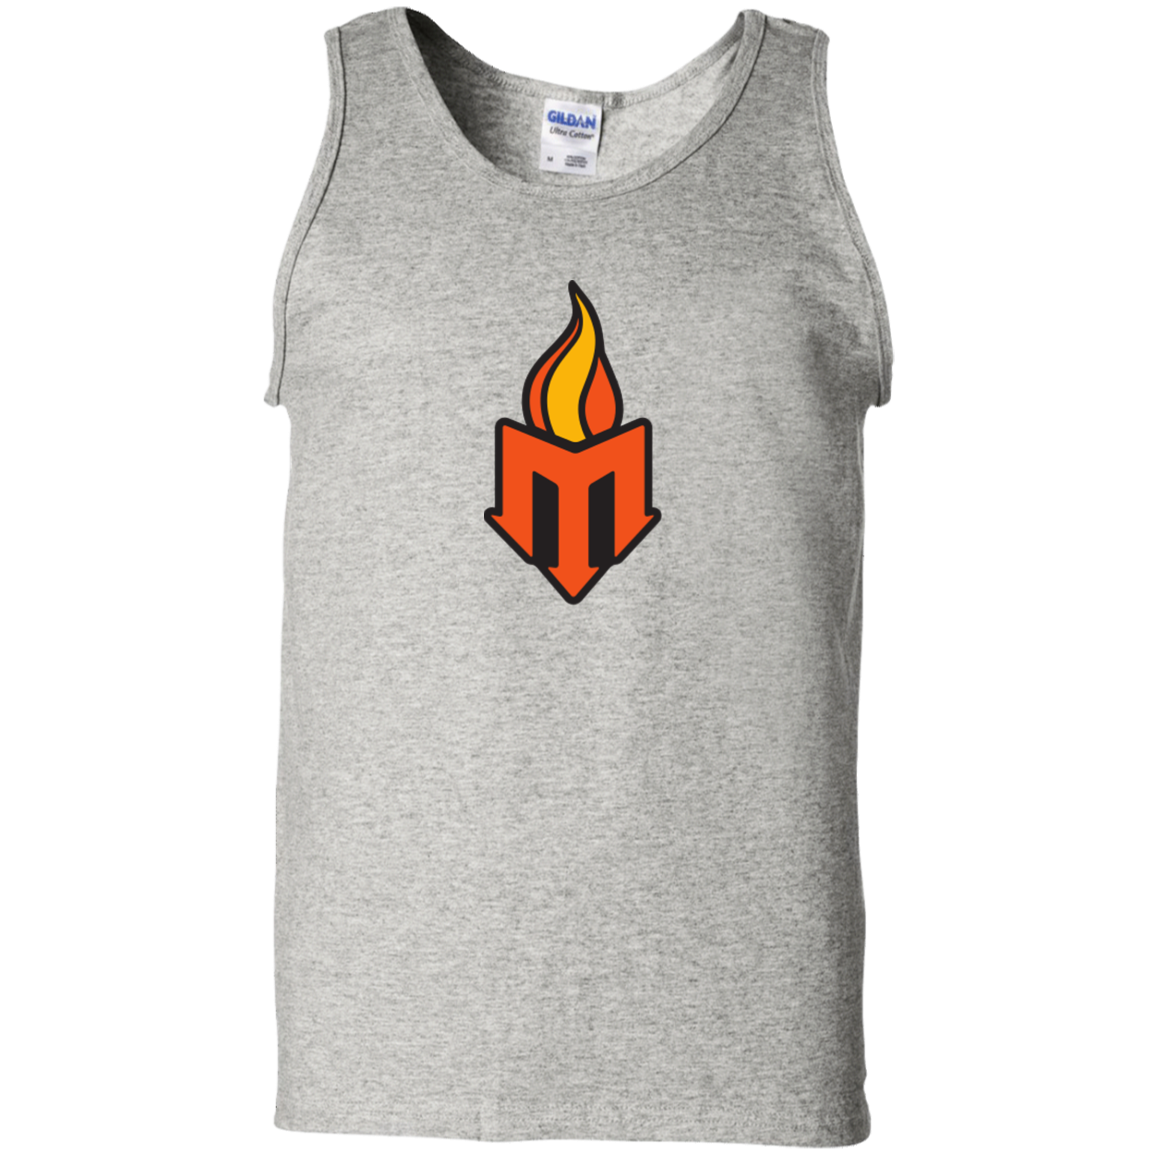 G220 100% Cotton Tank Top - moraydivelights